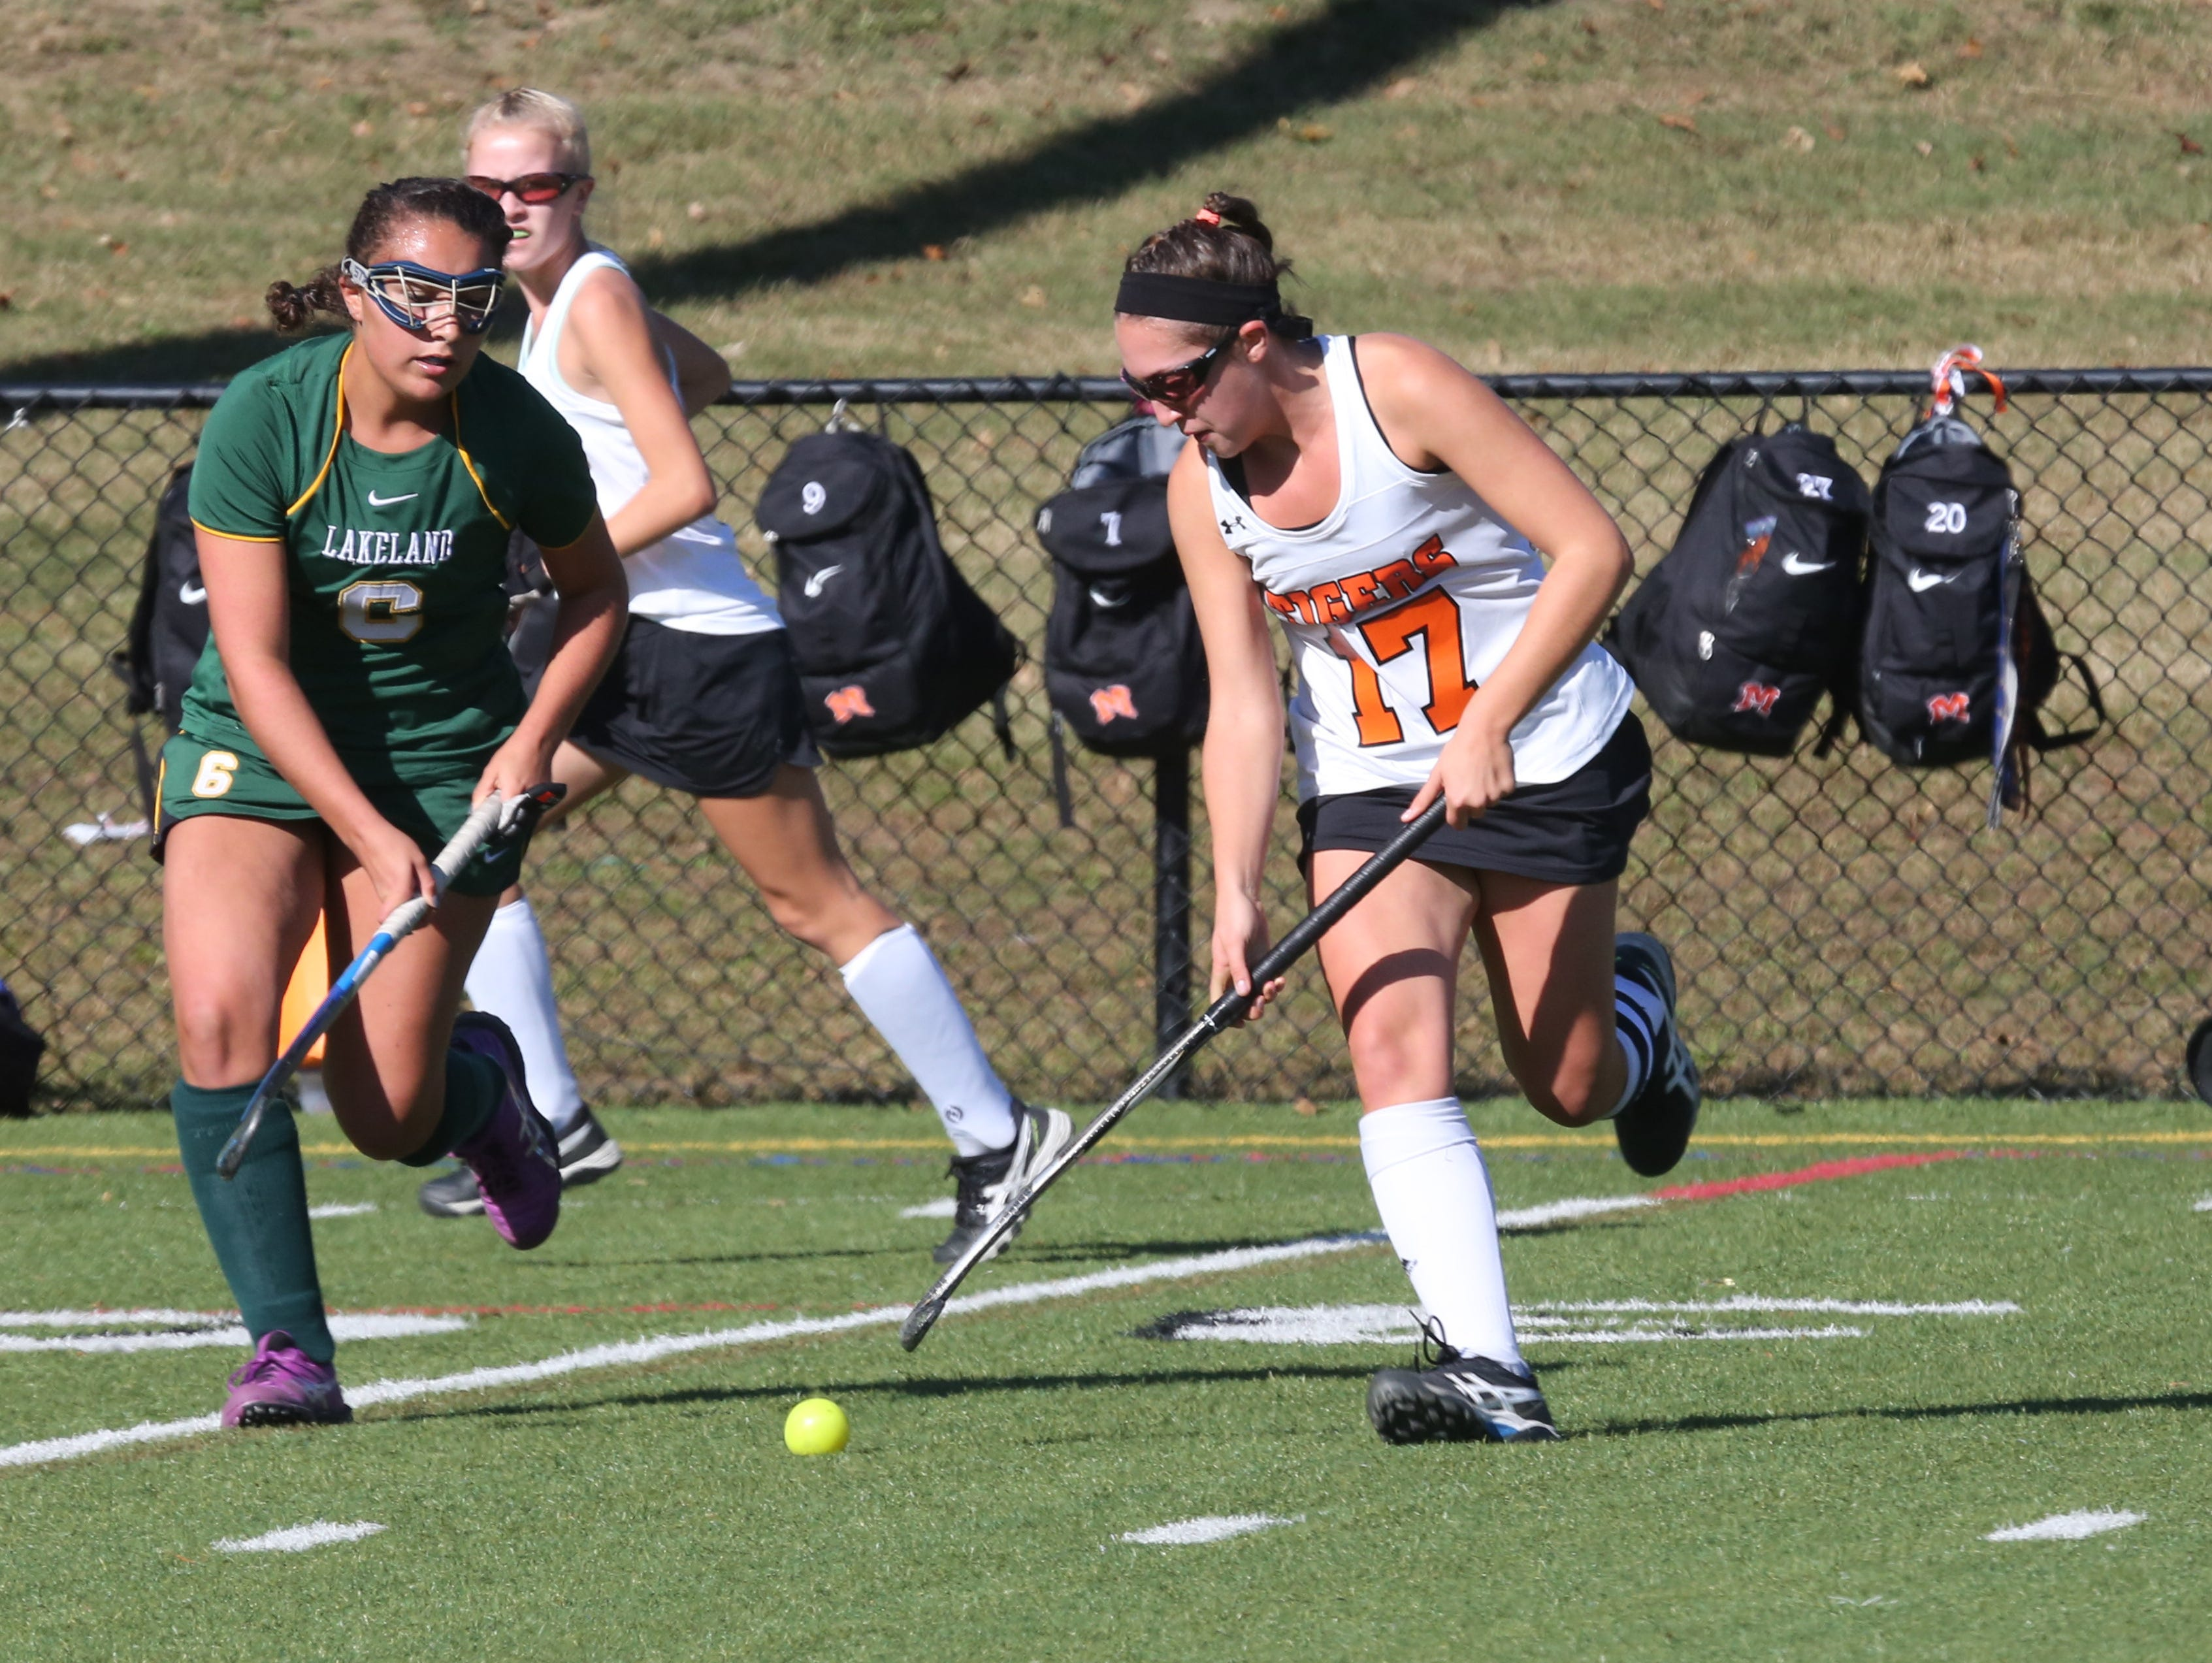 Lakeland's Emily Kness, left, and Mamaroneck's Paige Danehy chase down a ball during their game in Mamaroneck Saturday.